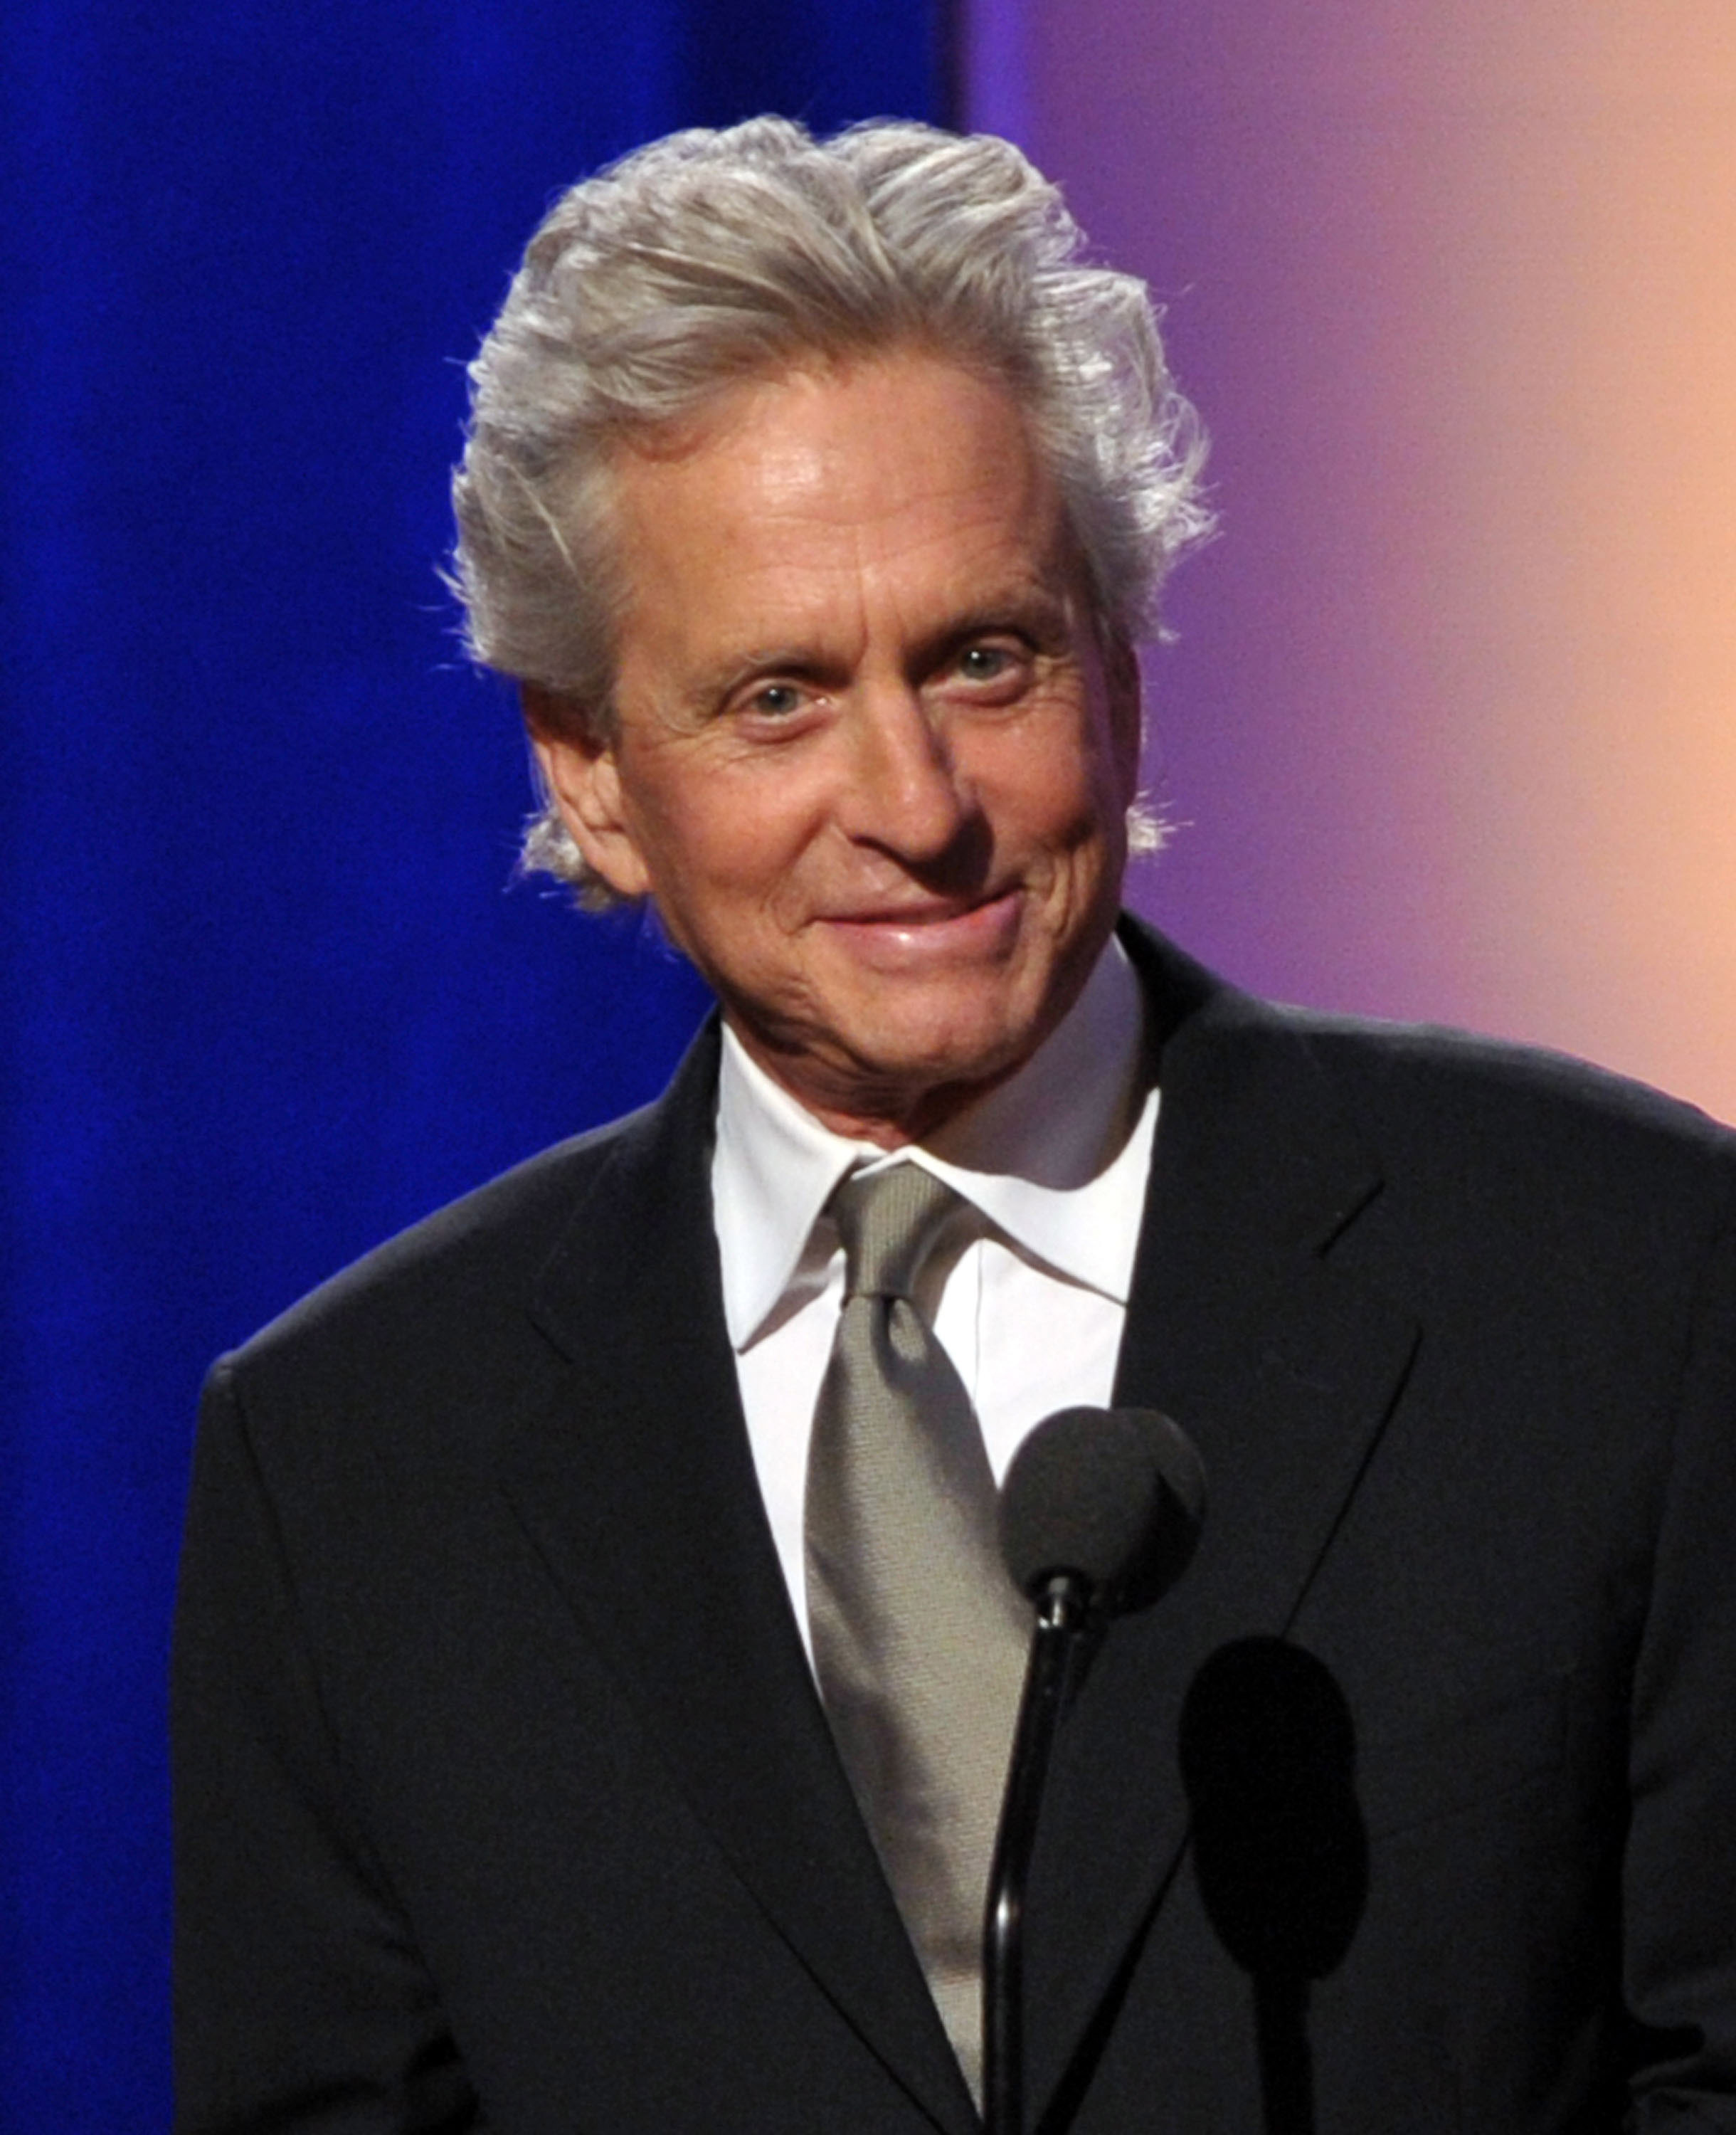 Michael Douglas was happy to attend the function.